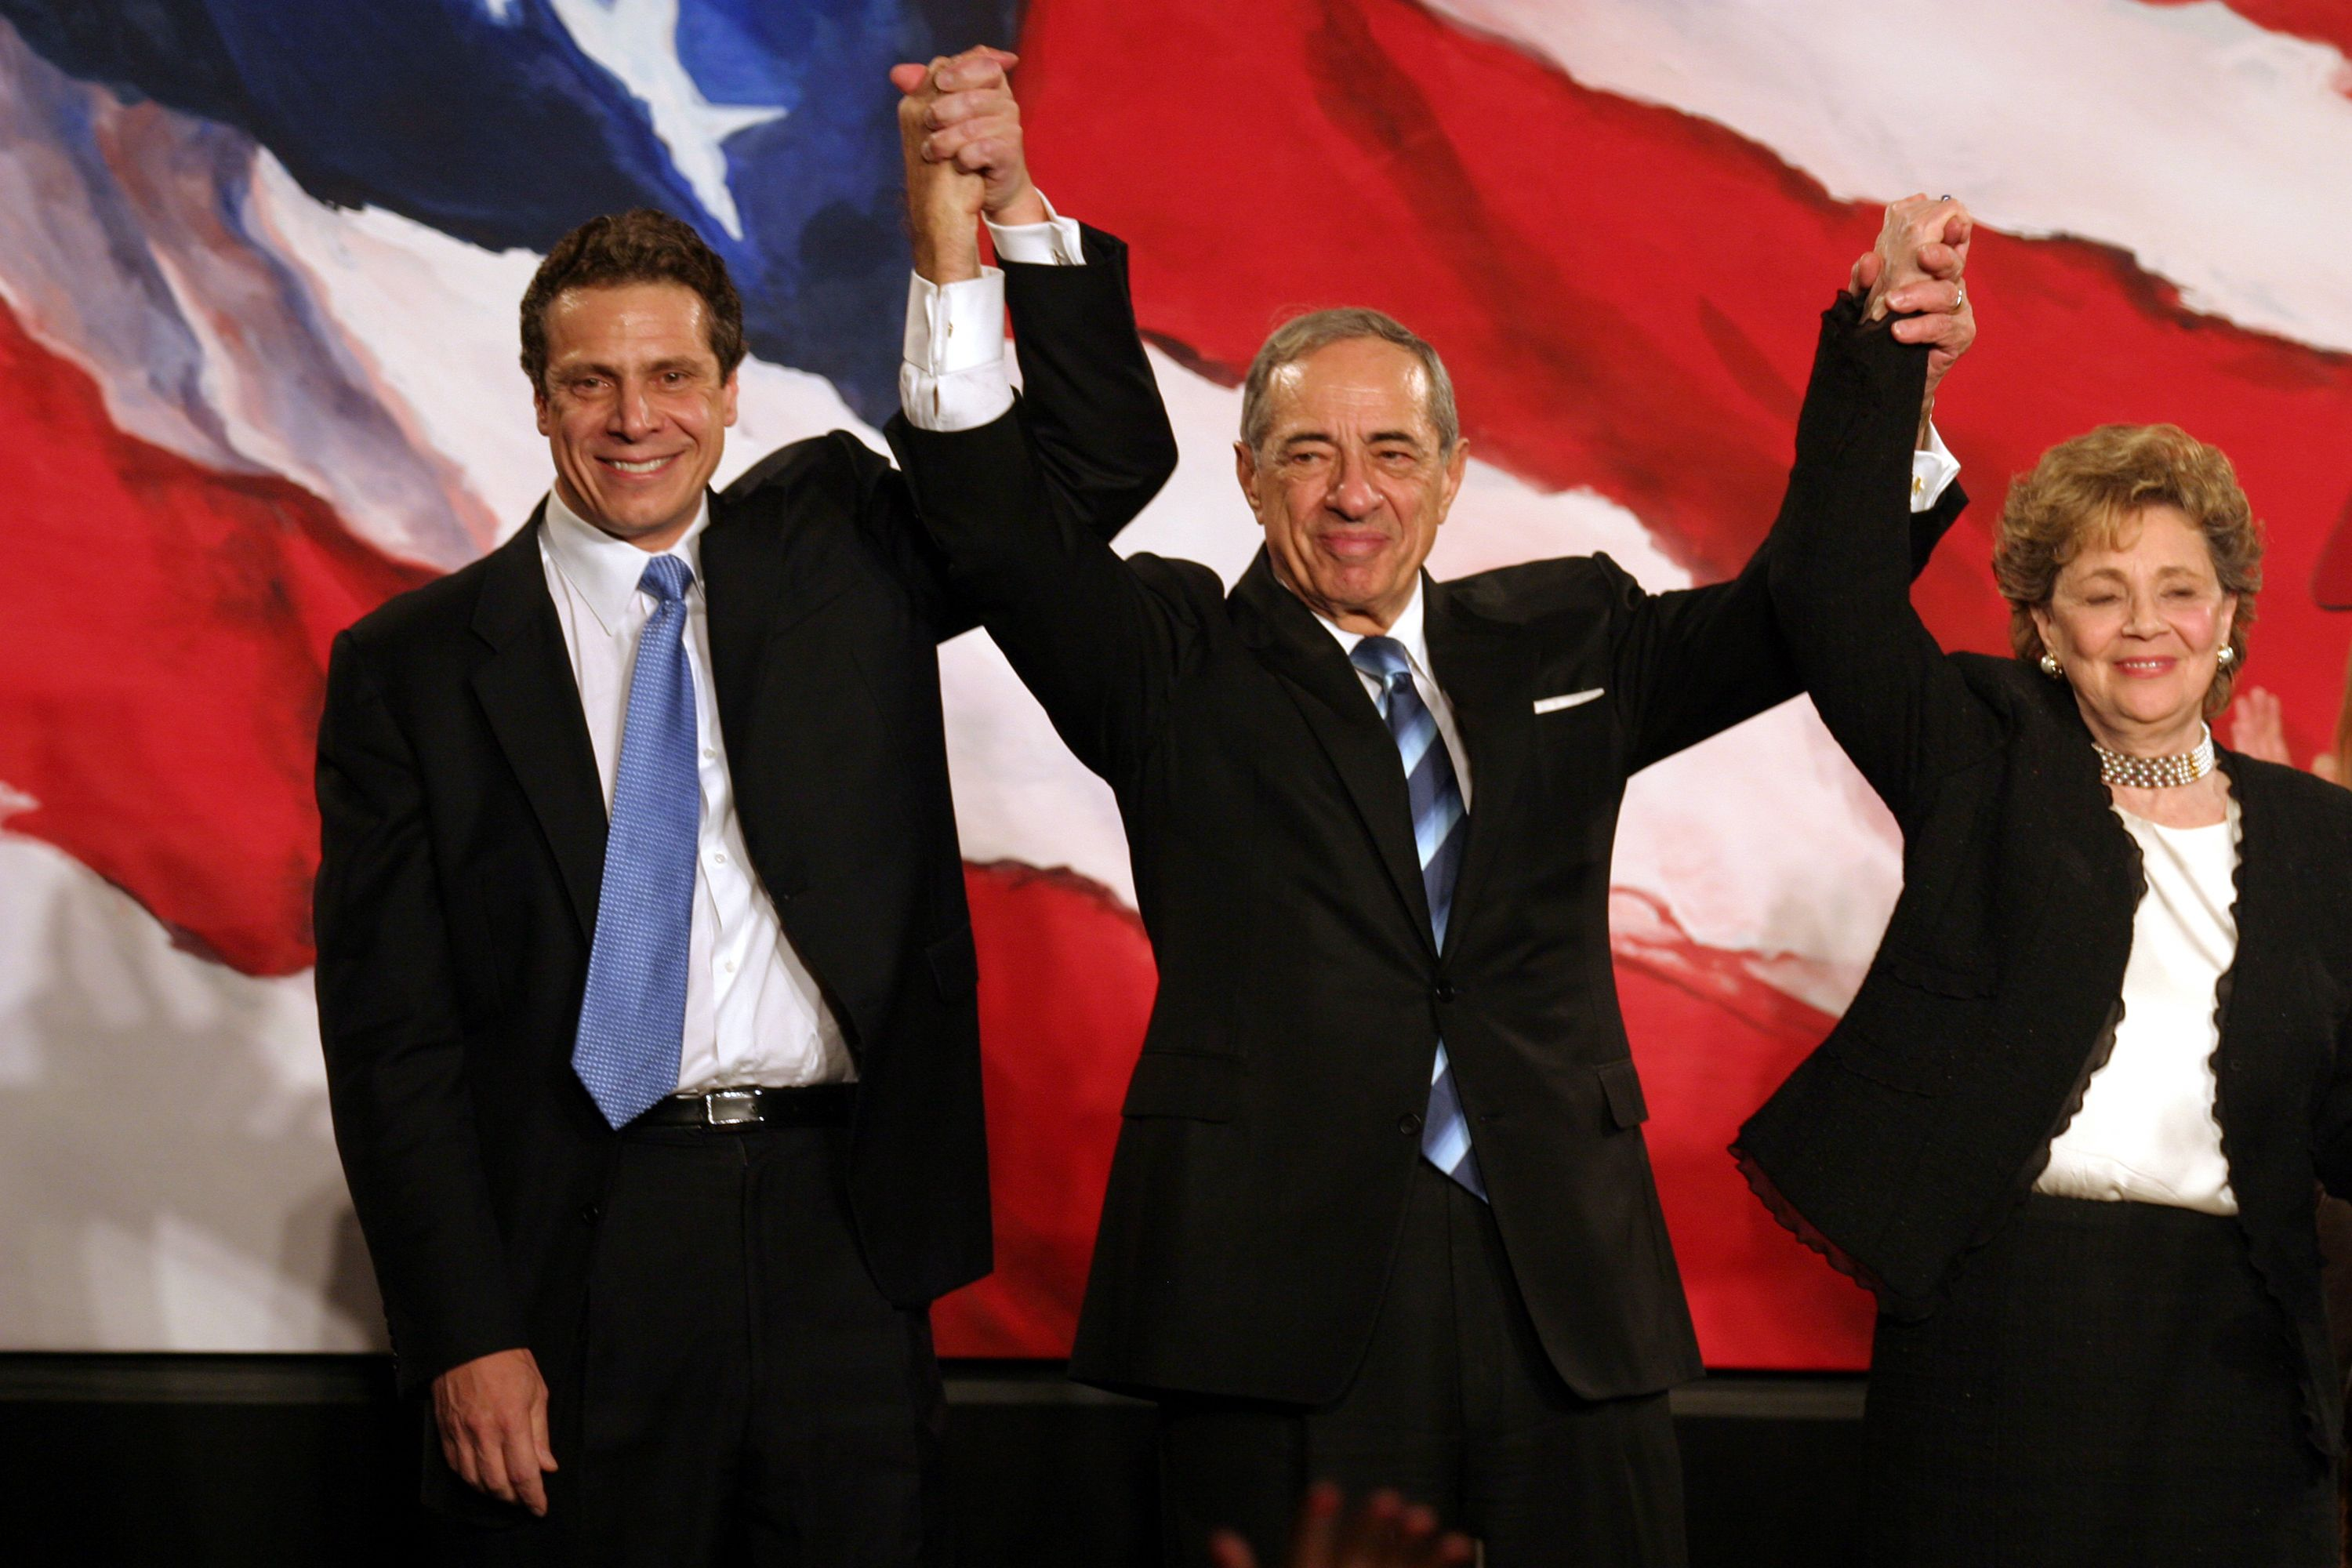 Andrew Cuomo, Mario Cuomo and Matilda Cuomo raise their hands in celebration during the Democratic Victory Celebration 2006| Photo: Getty Images